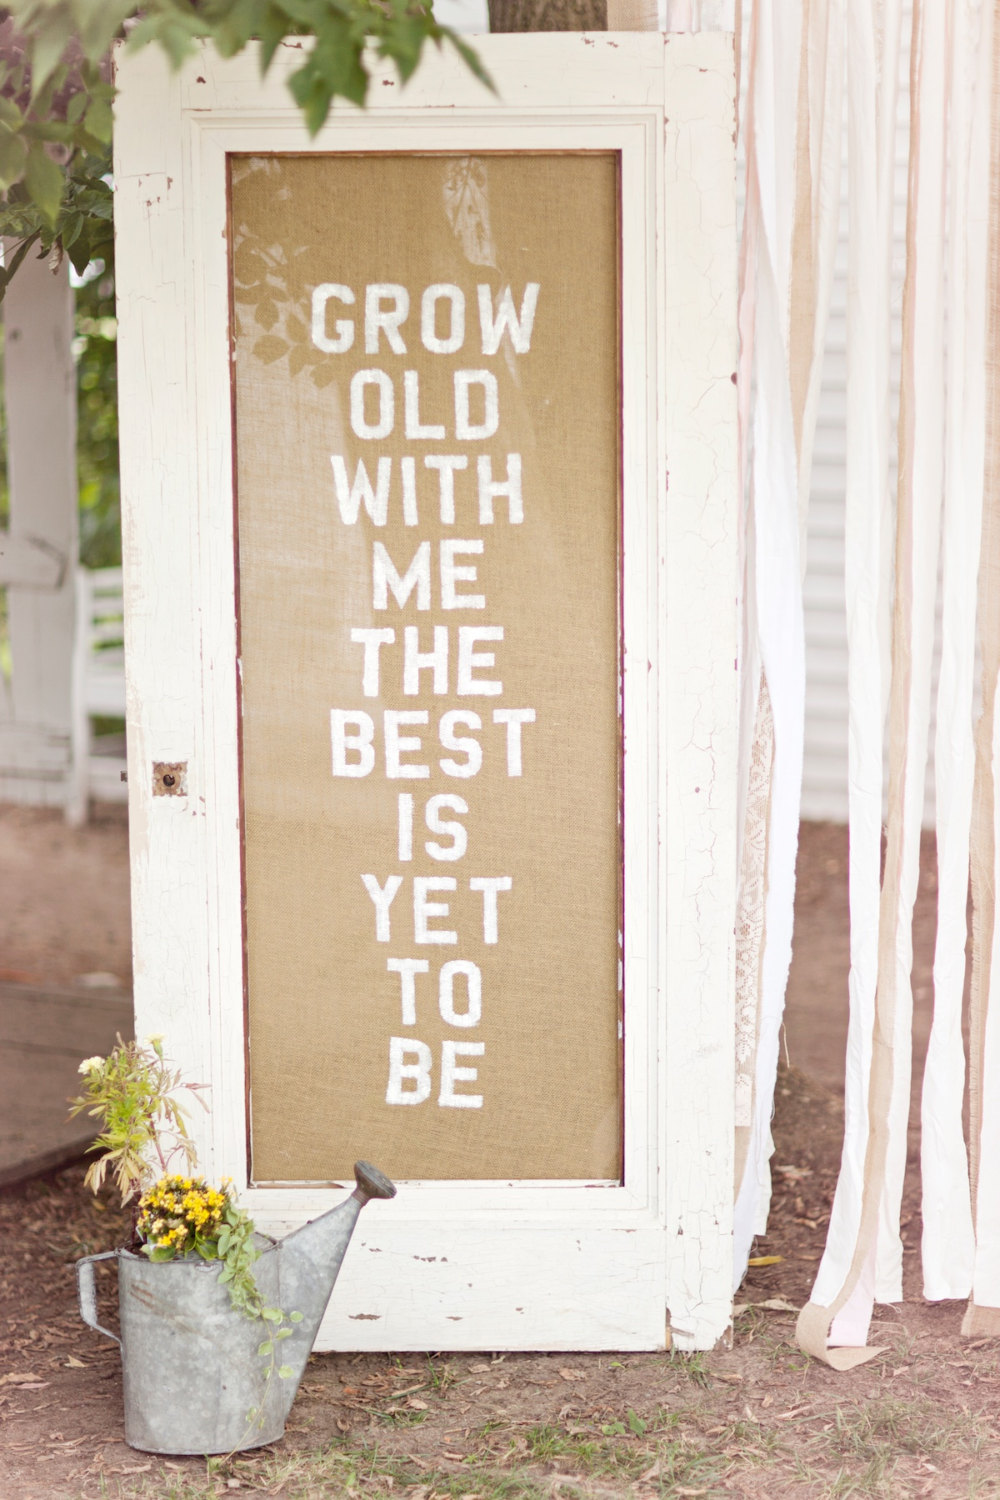 antique ceremony door with burlap grow old with me | 50 Best Burlap Wedding Ideas | via http://emmalinebride.com/decor/burlap-wedding-ideas/